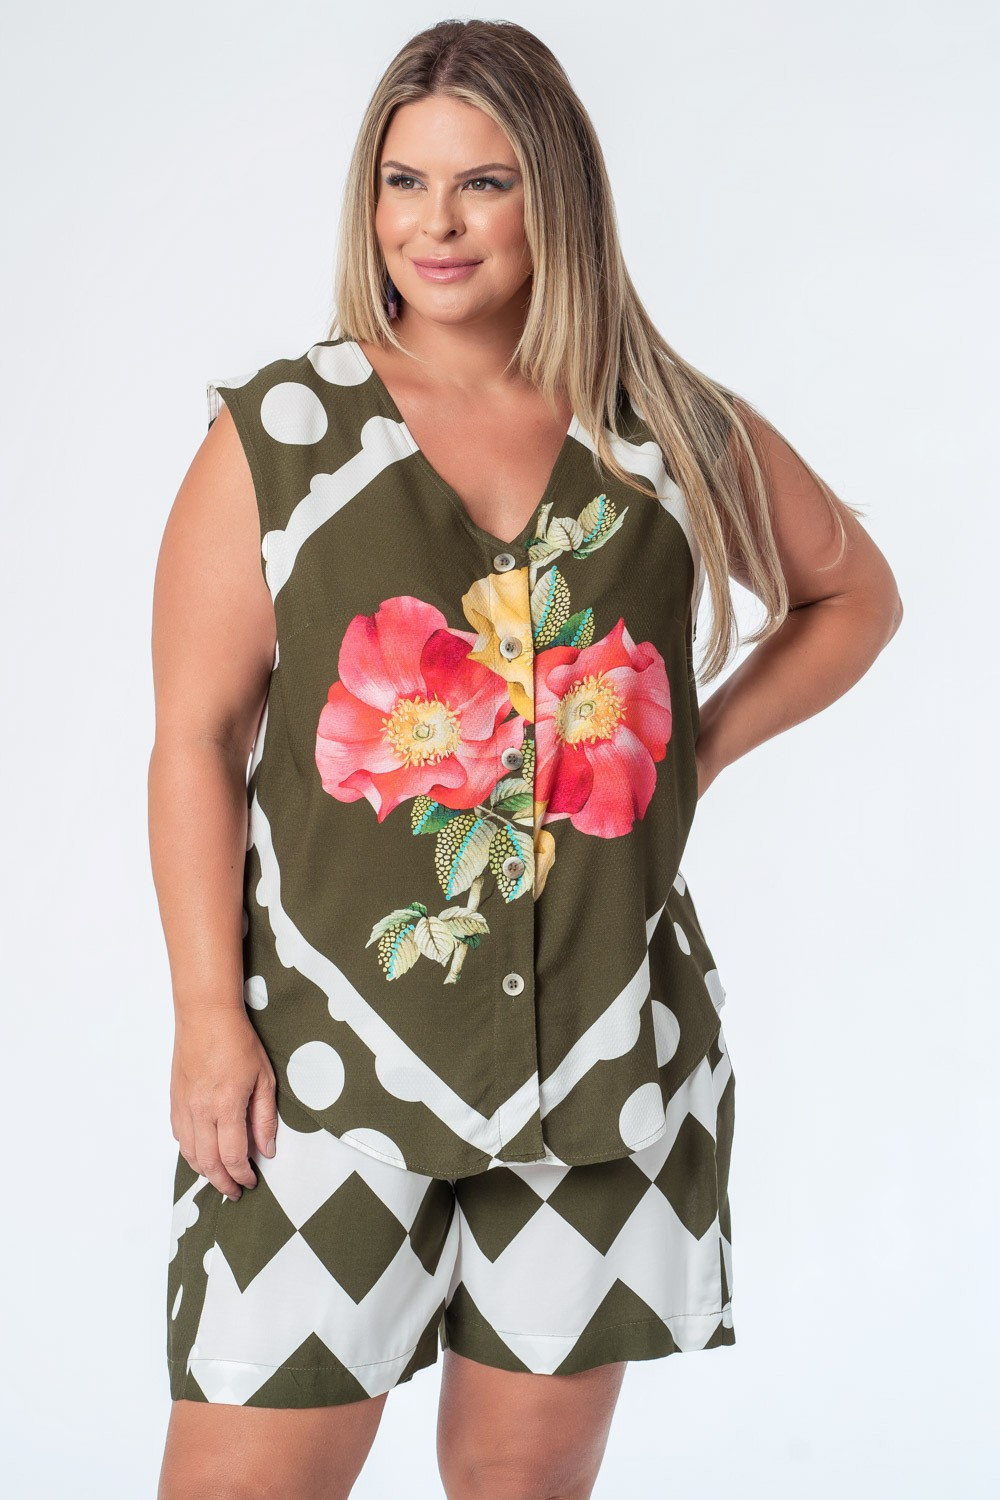 CAMISA TÚNICA ESTAMPADA MIX PLUS SIZE VERDE